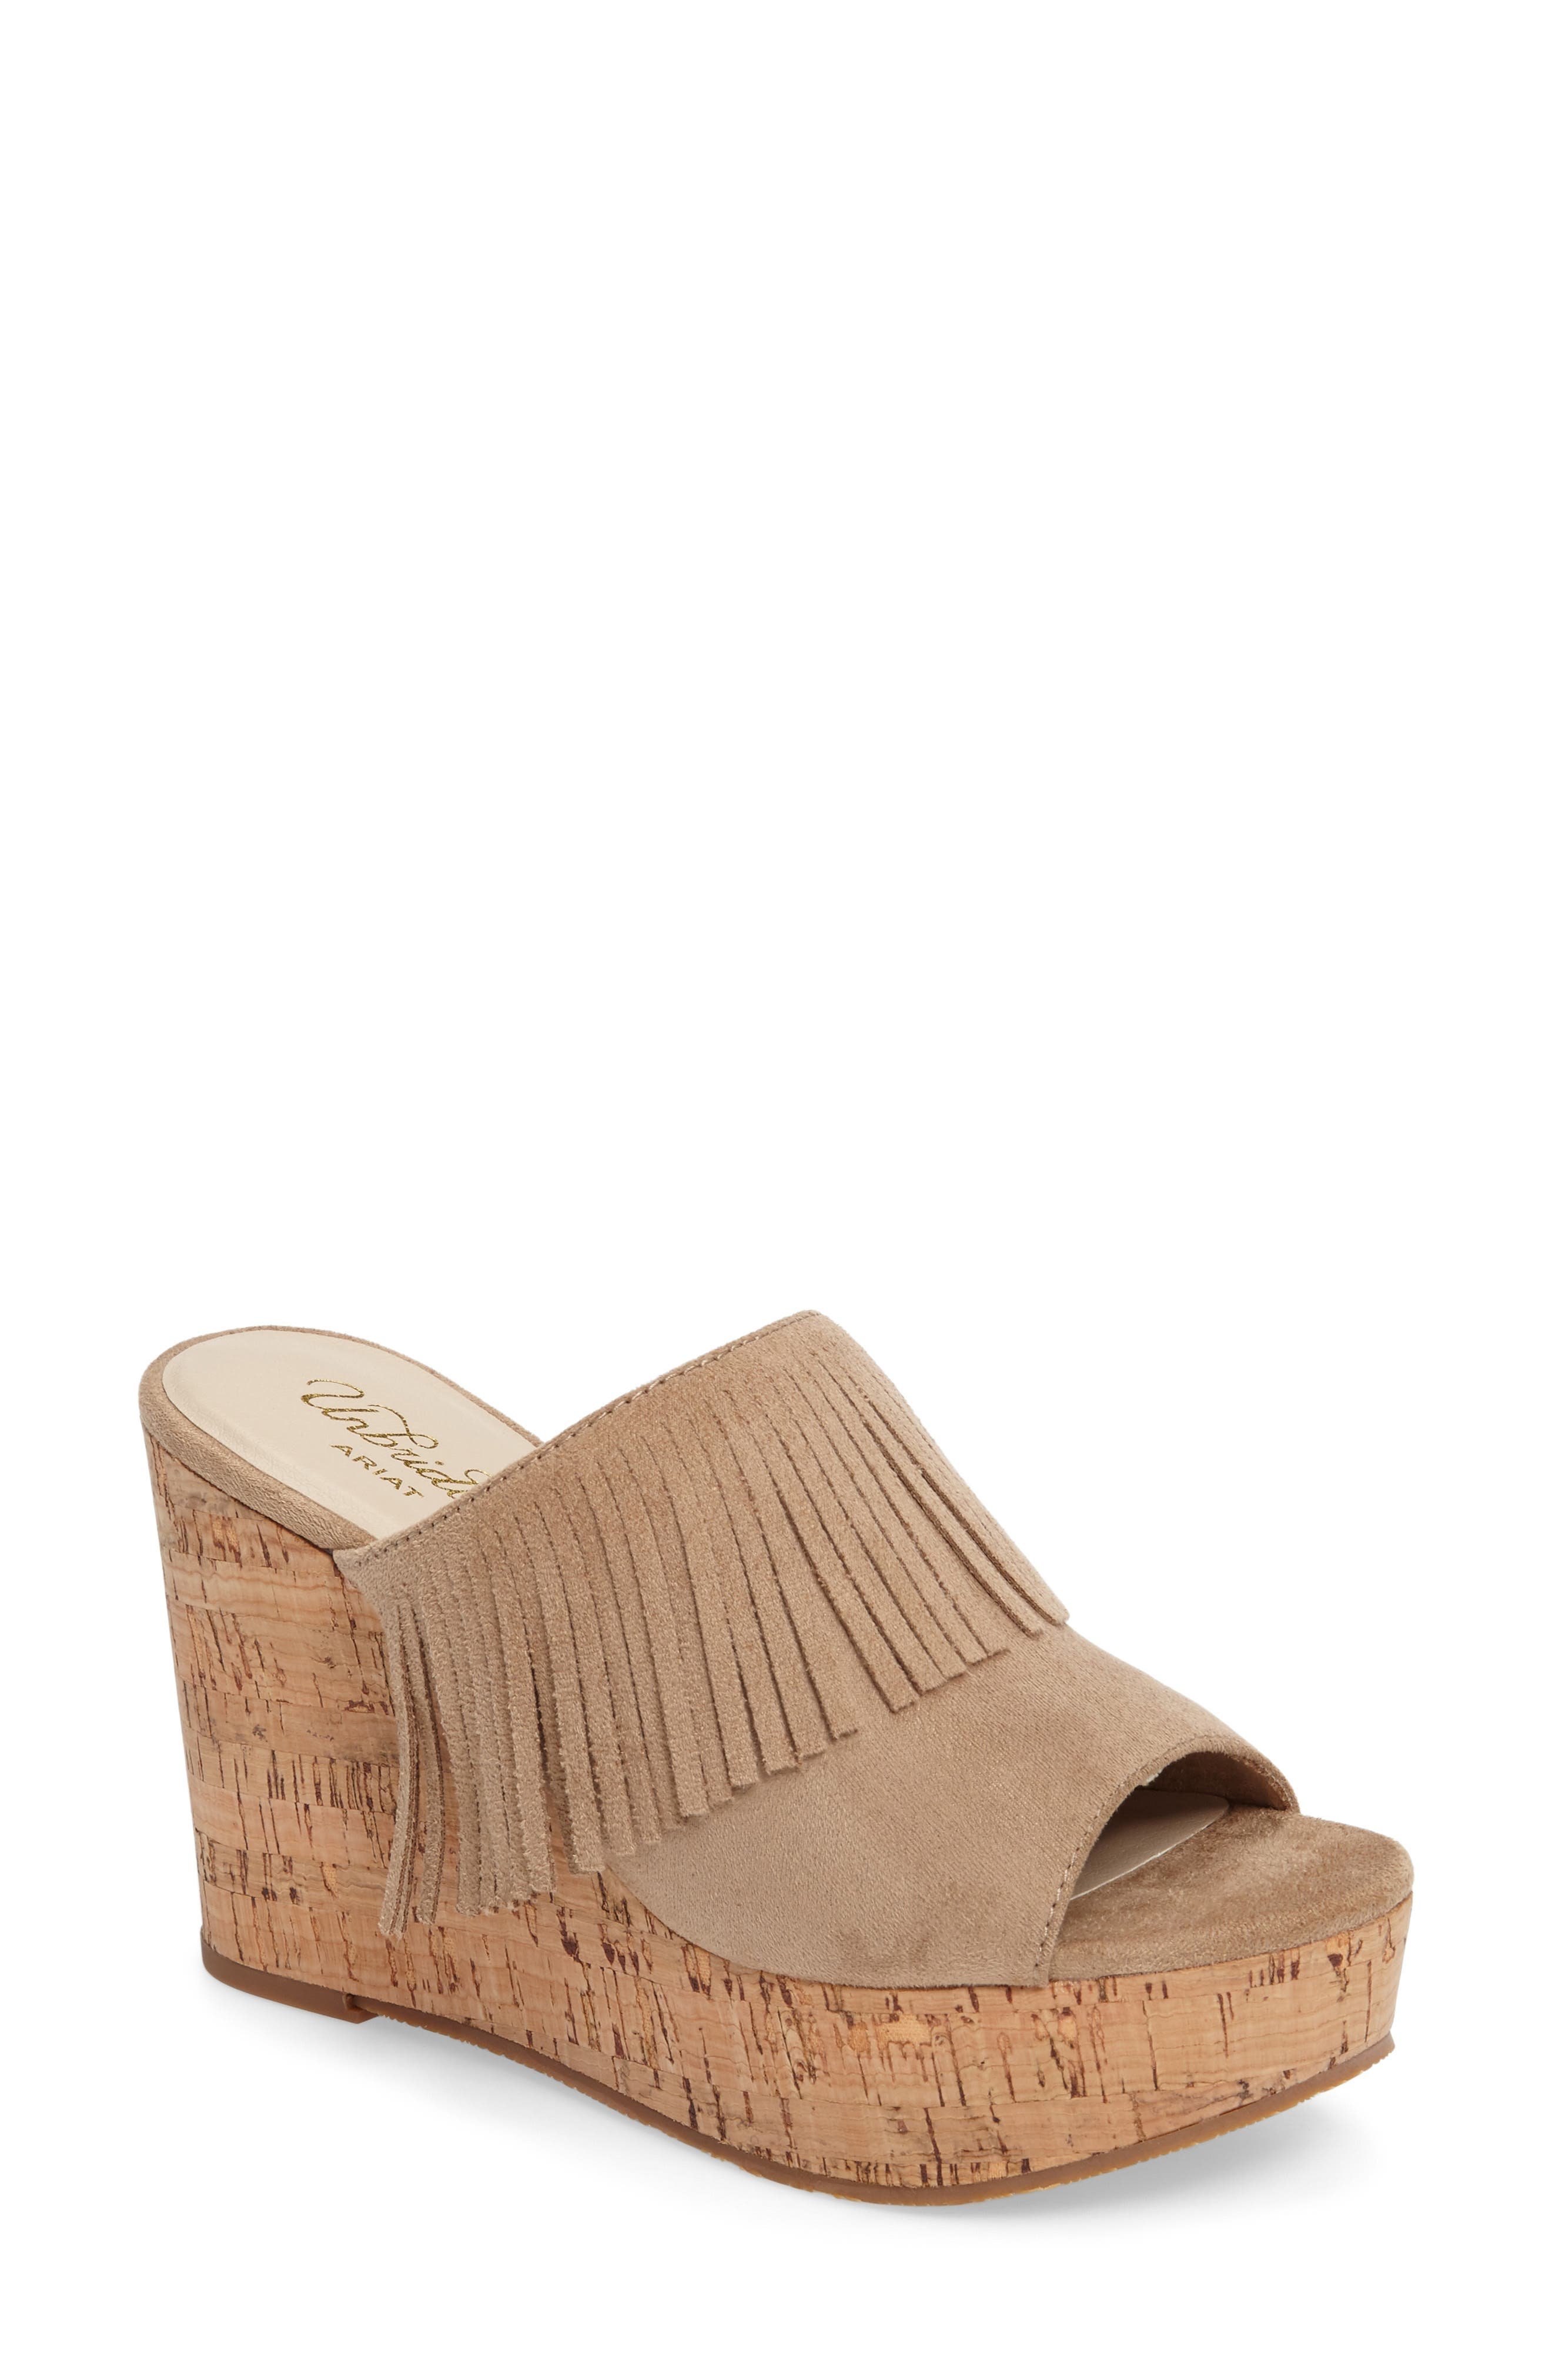 Unbridled Leigh Fringe Mule,                         Main,                         color, SAND FABRIC